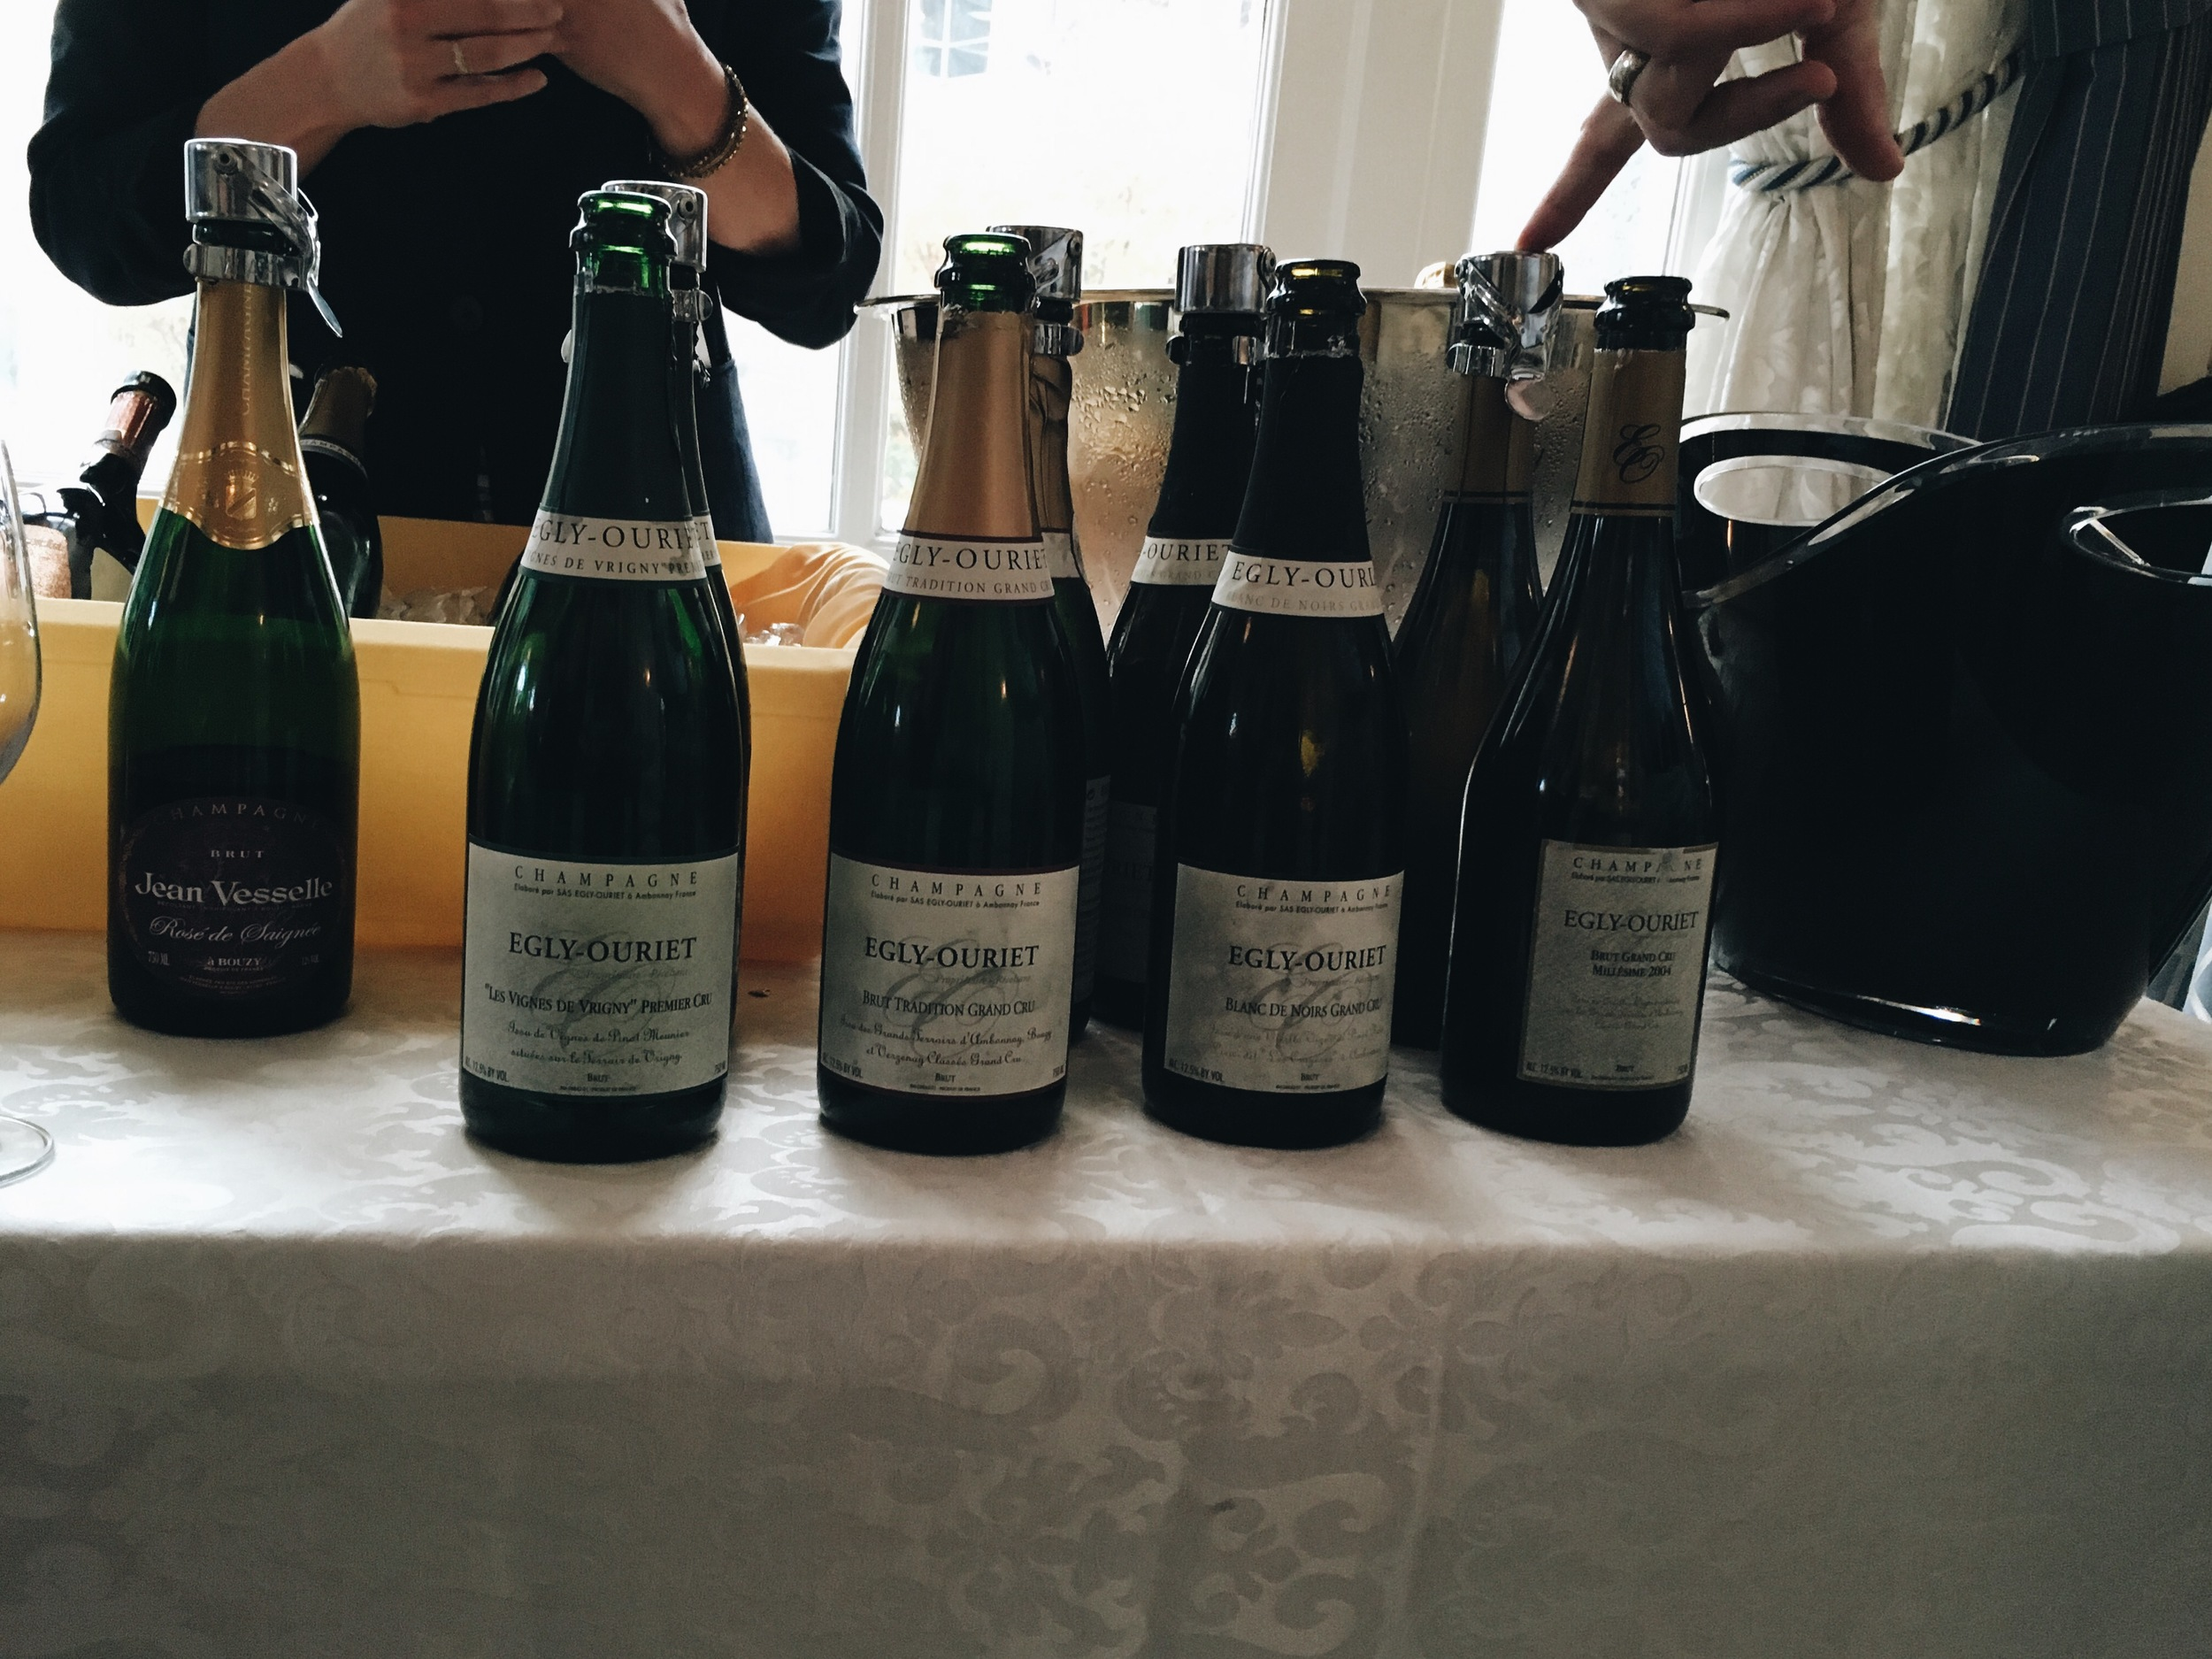 We recently attended a large Champagne tasting which included some of the most expensive and famous bottlings of Champagne. For us Egly-Ouriet was handily the best in show, drinking better than wines more than 3-times the price.